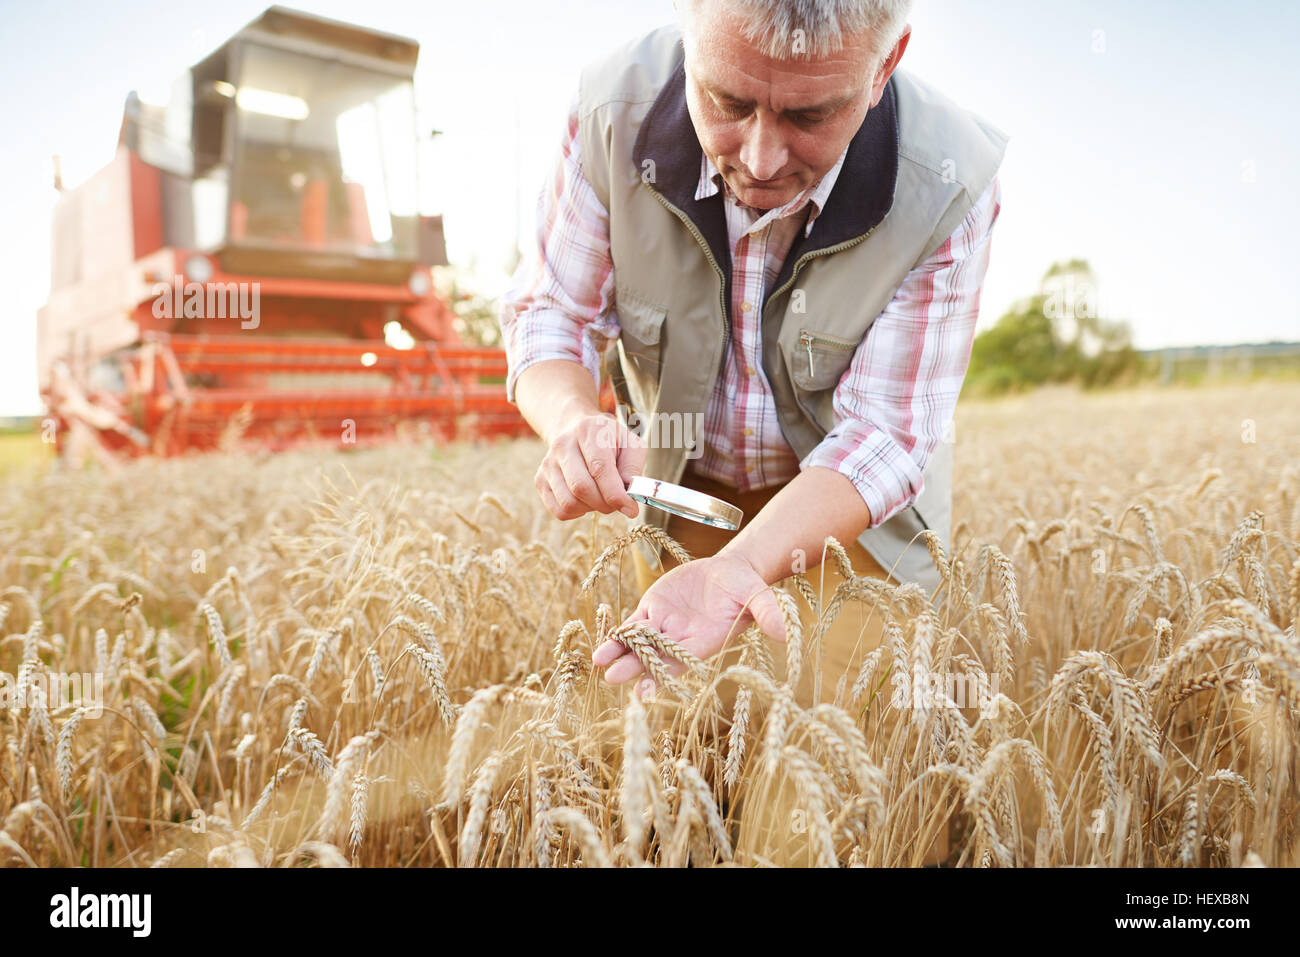 Farmer in wheat field quality checking wheat with magnifying glass - Stock Image